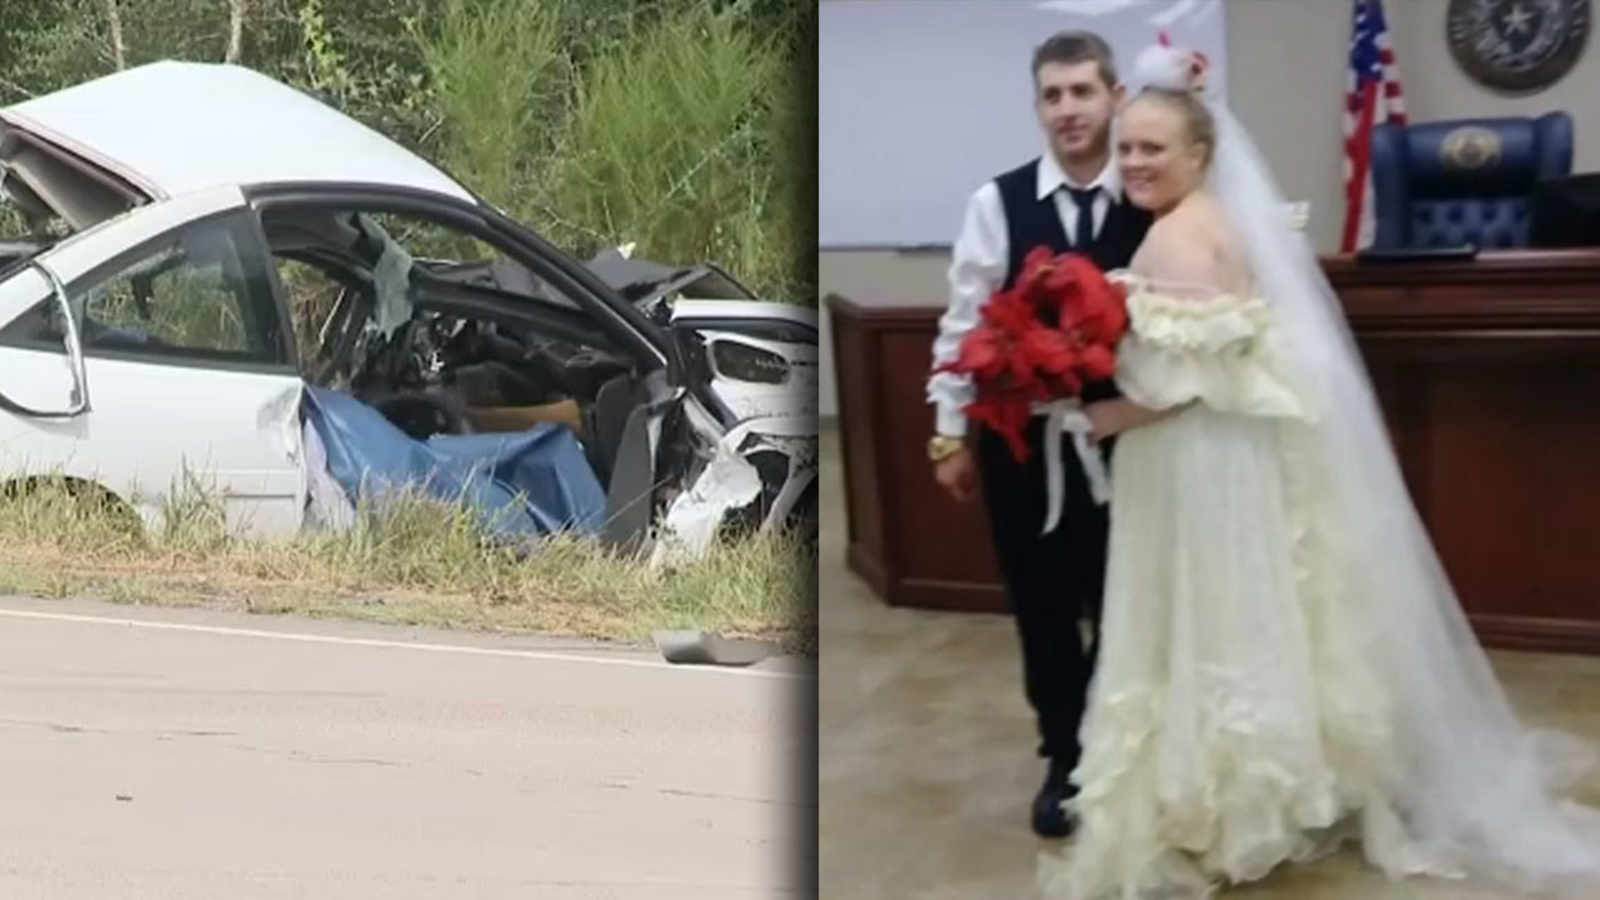 Texas Leaving Courthouse After Getting Married Killed In Crash